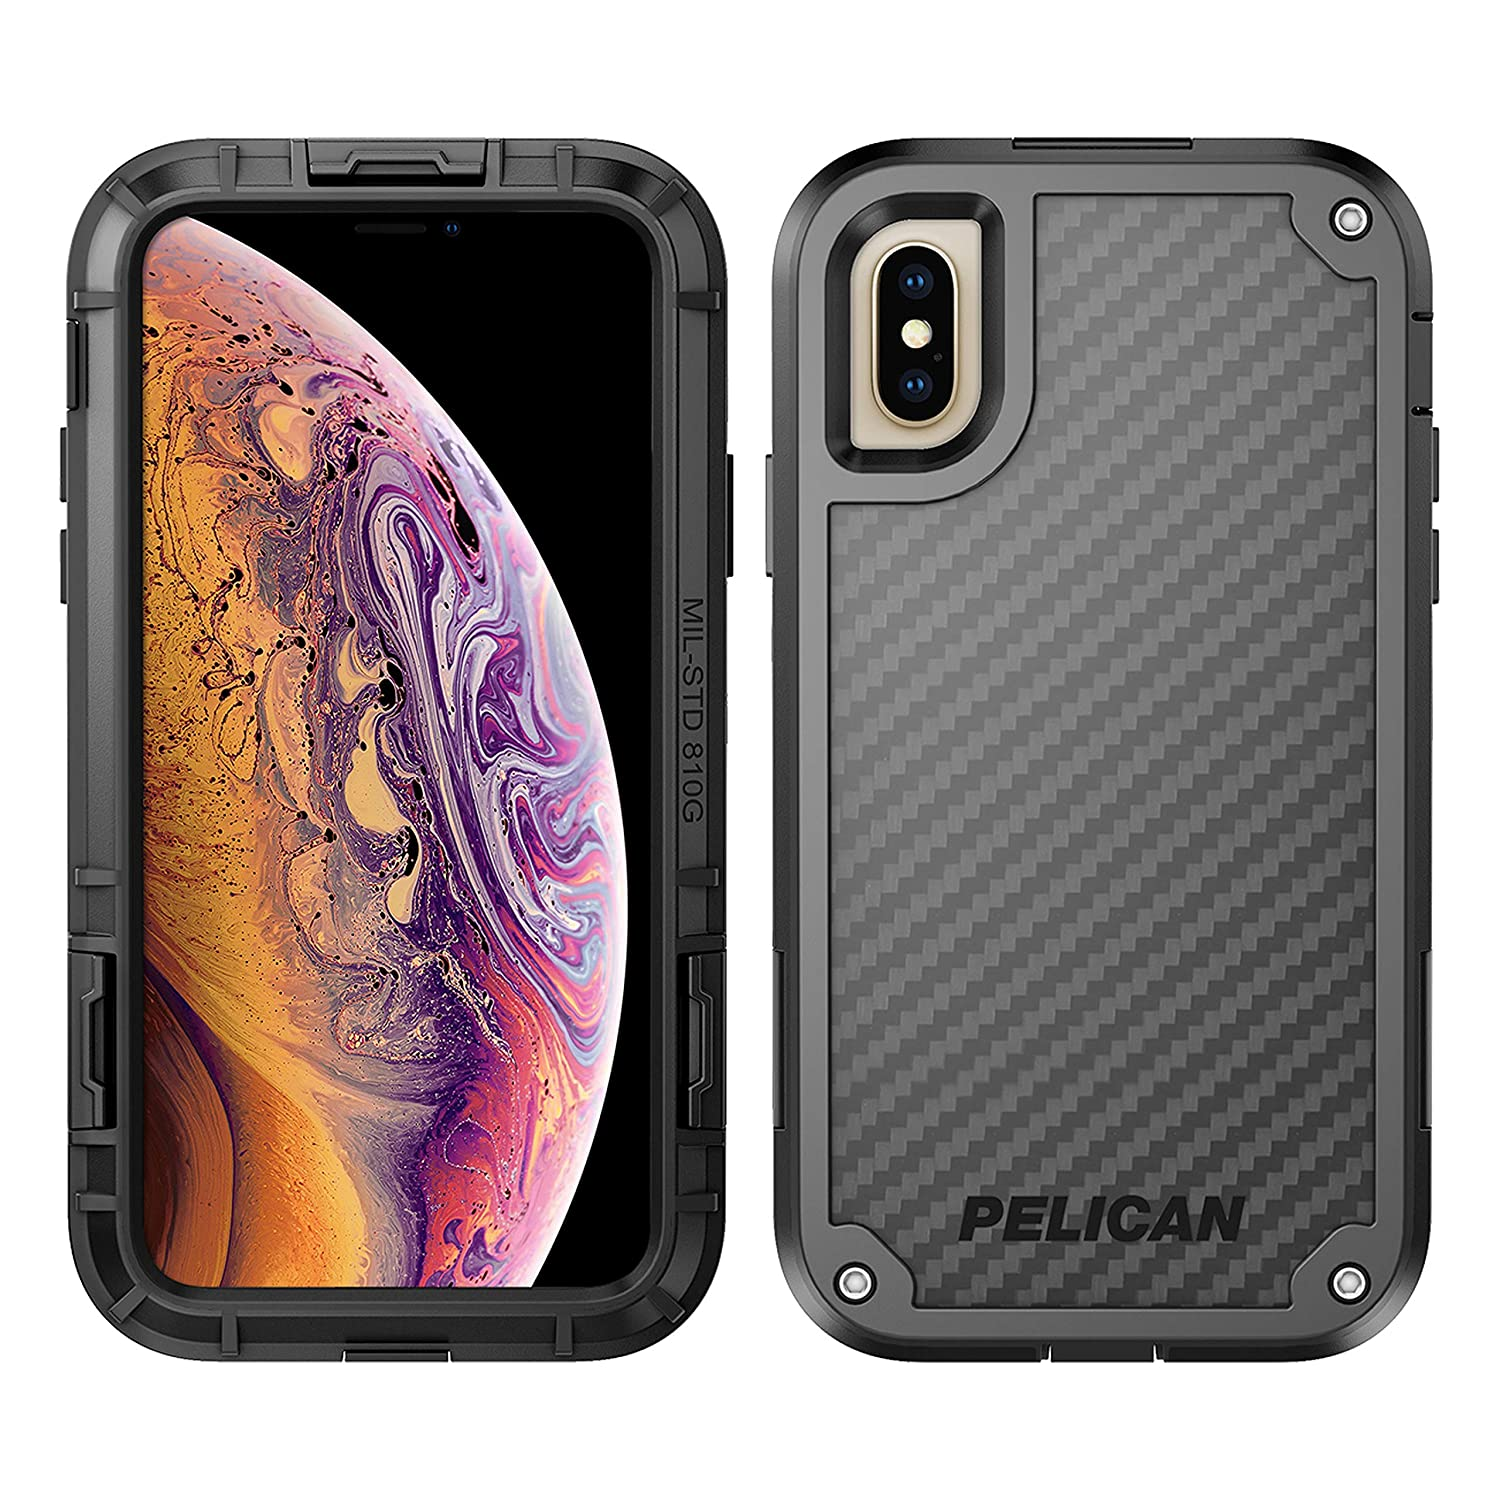 hot sale online eaae3 e0c41 iPhone X Case | Pelican Shield Case for iPhone X - Ultra slim design  constructed of Kevlar brand fibers for up to 24 feet drop protection